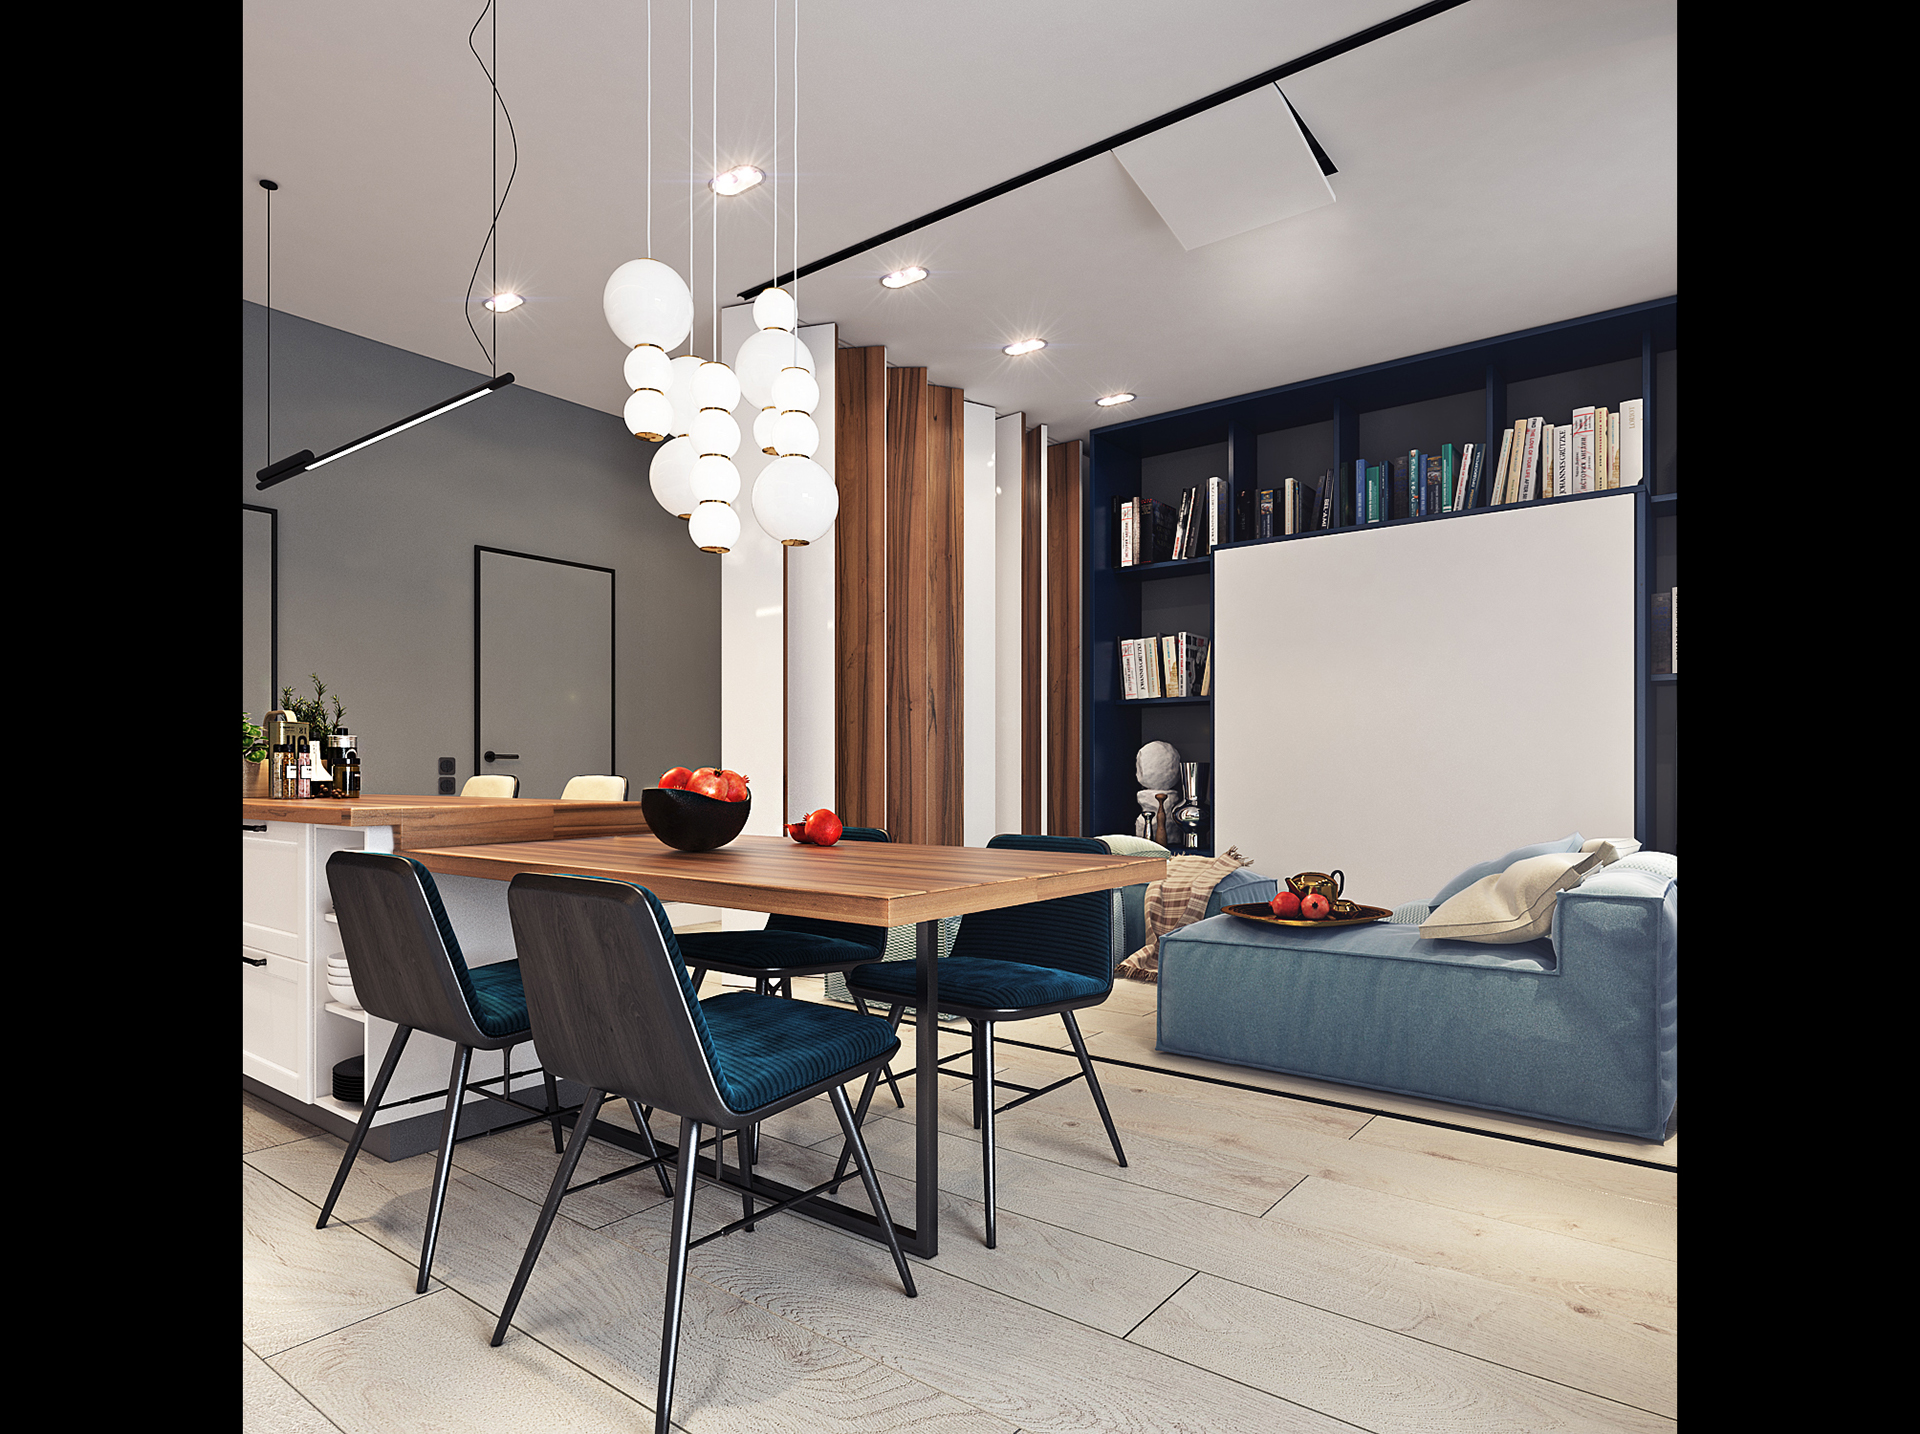 Design project of the apartment in zagreb 50 sq m on behance